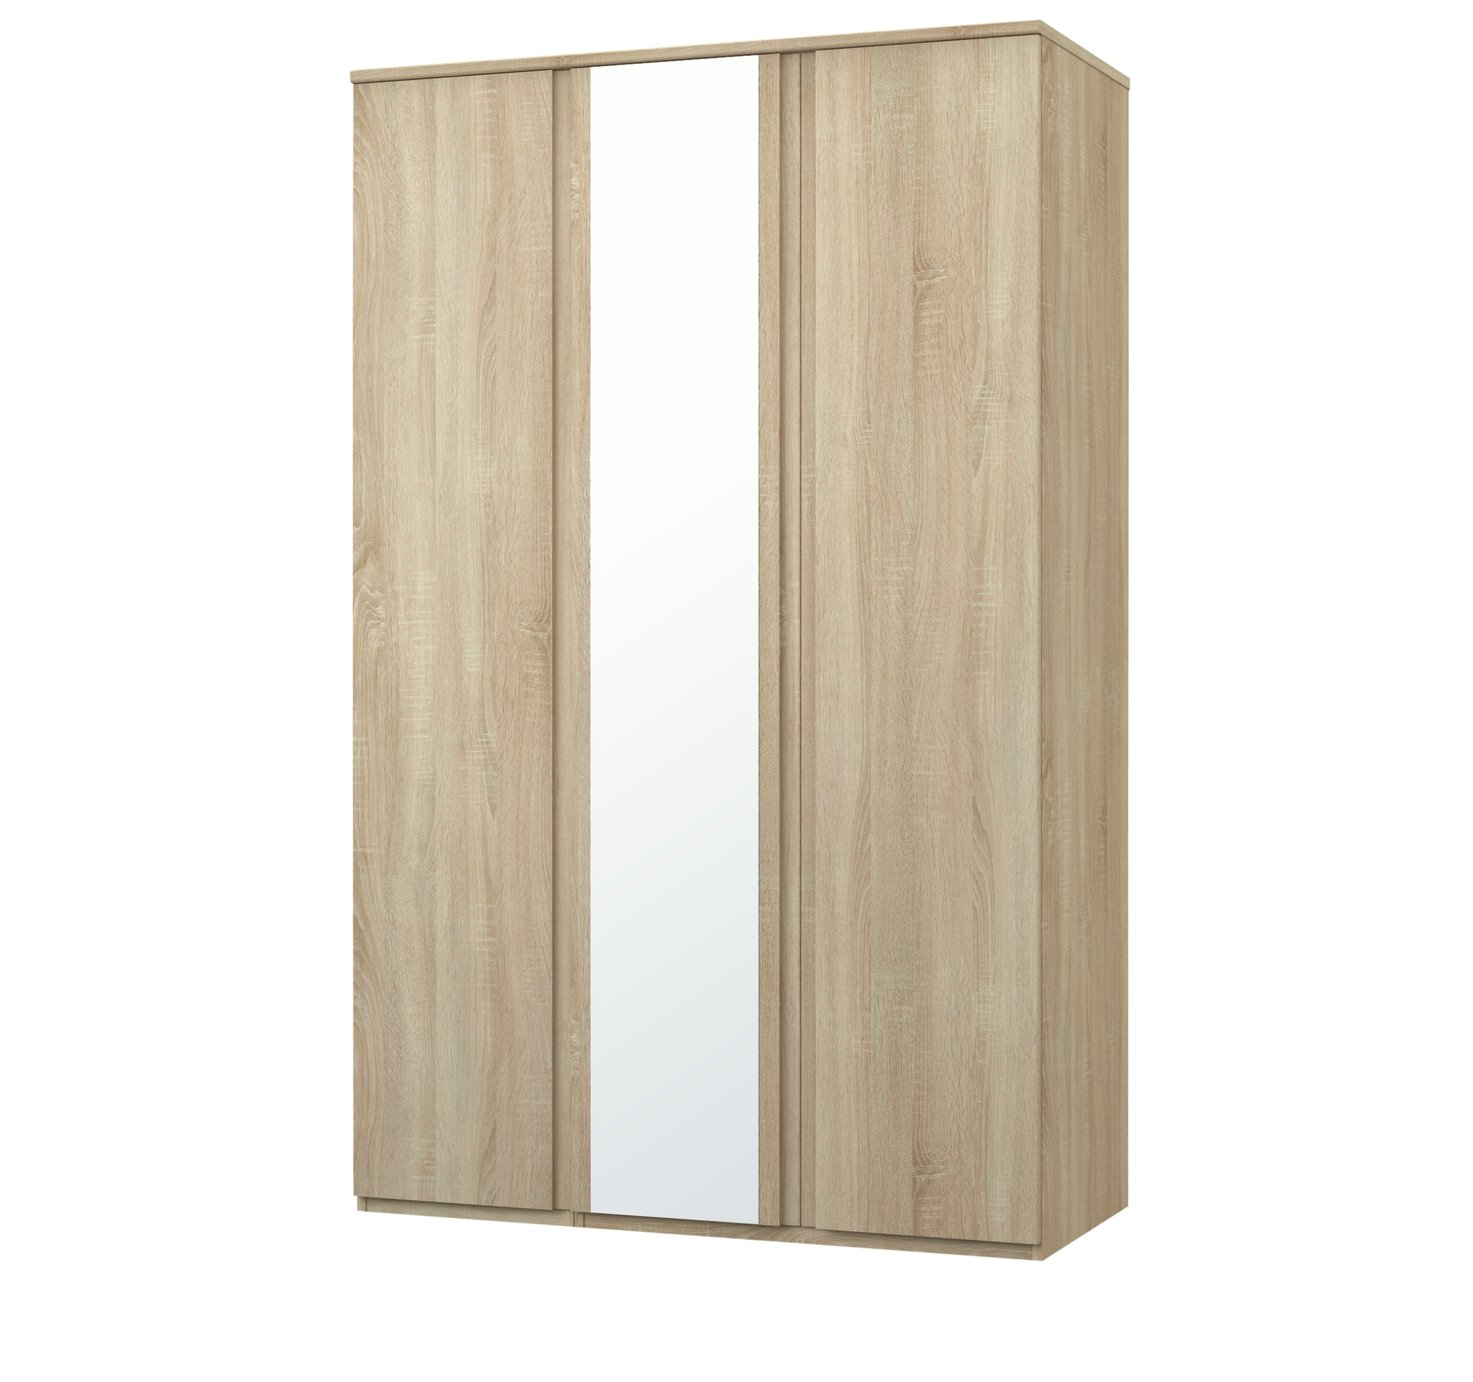 Avenue 3 Door Mirrored Wardrobe